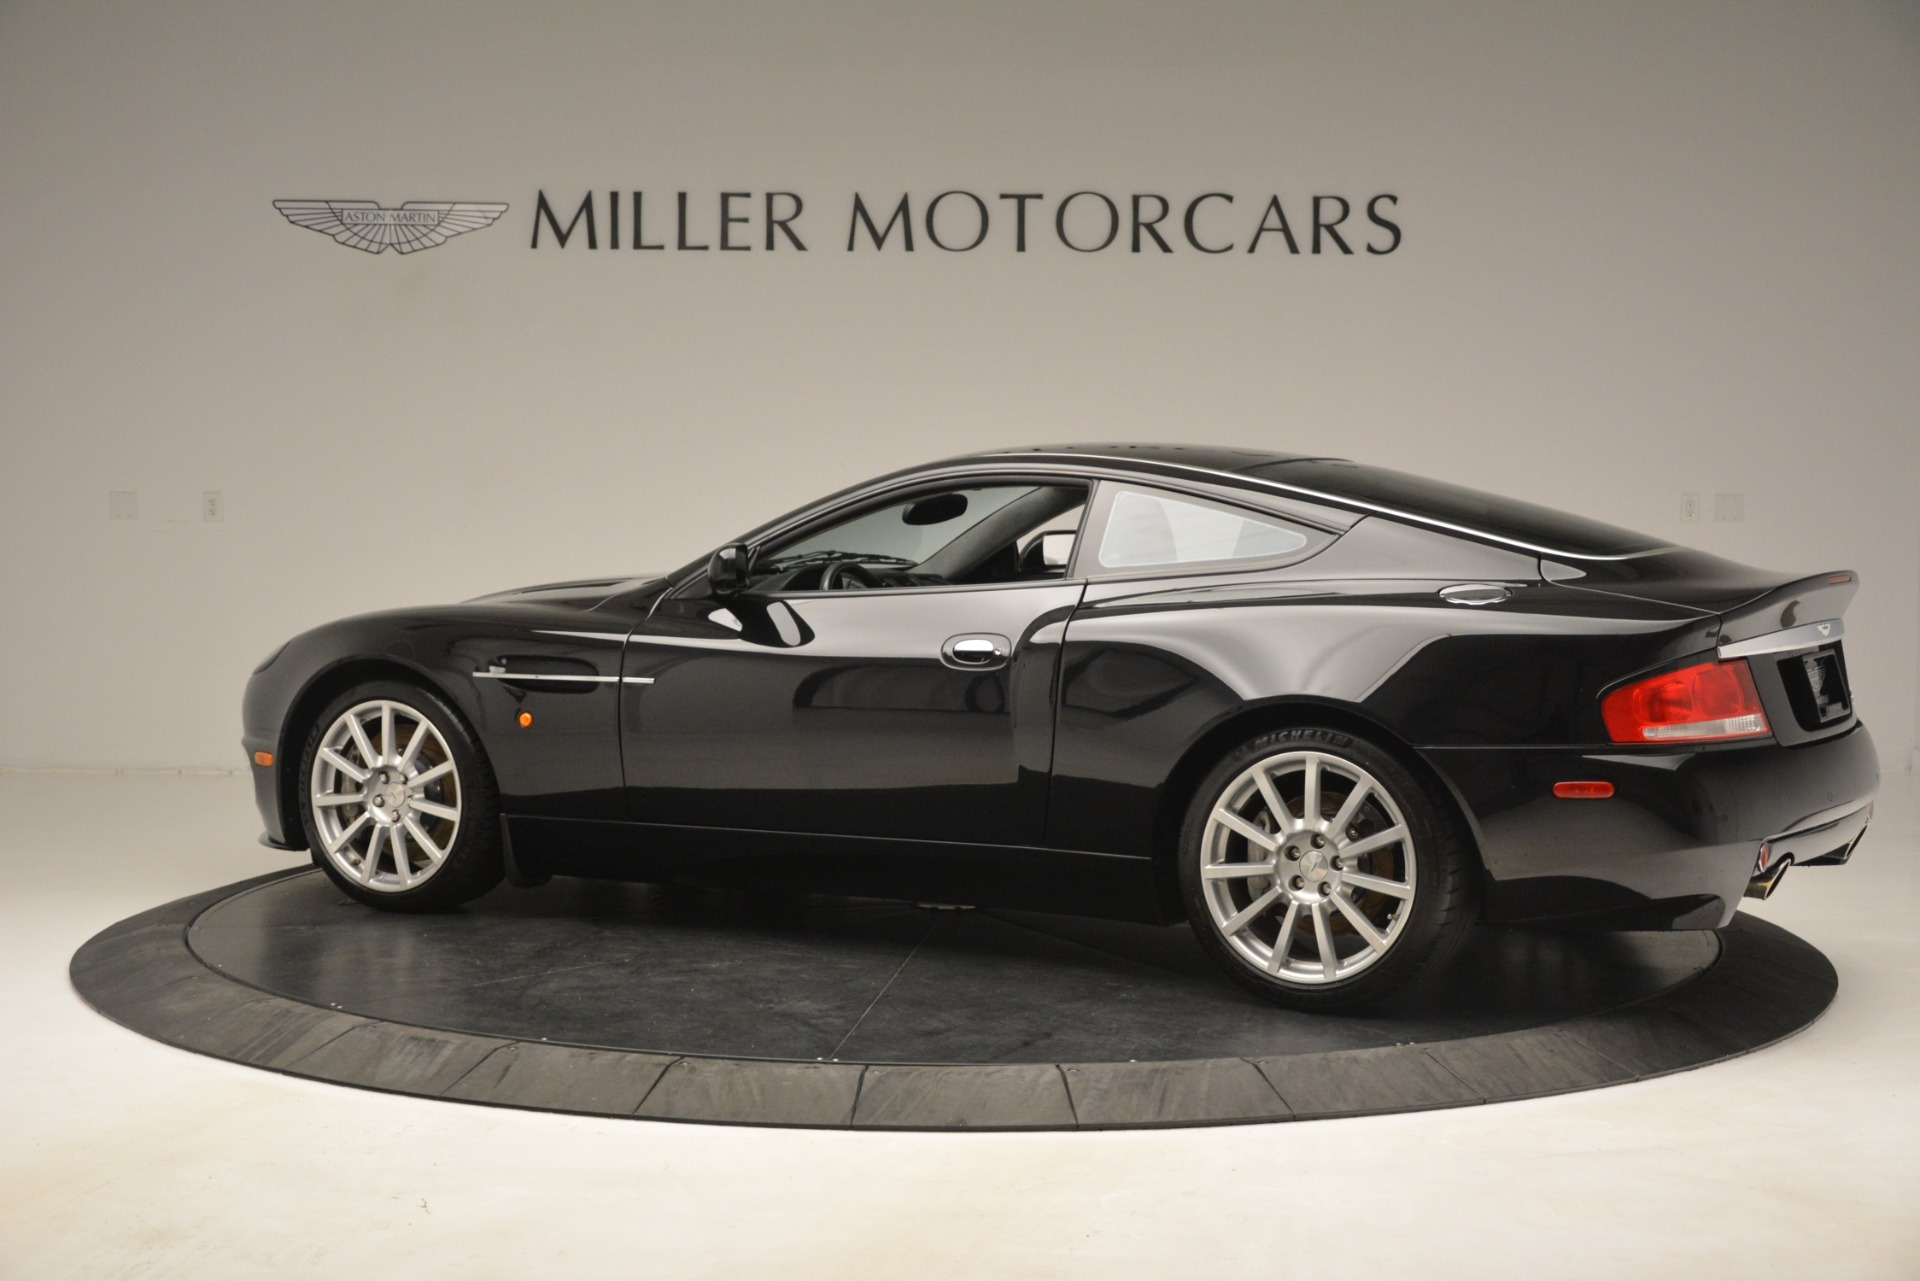 Used 2005 Aston Martin V12 Vanquish S For Sale In Greenwich, CT 3218_p4